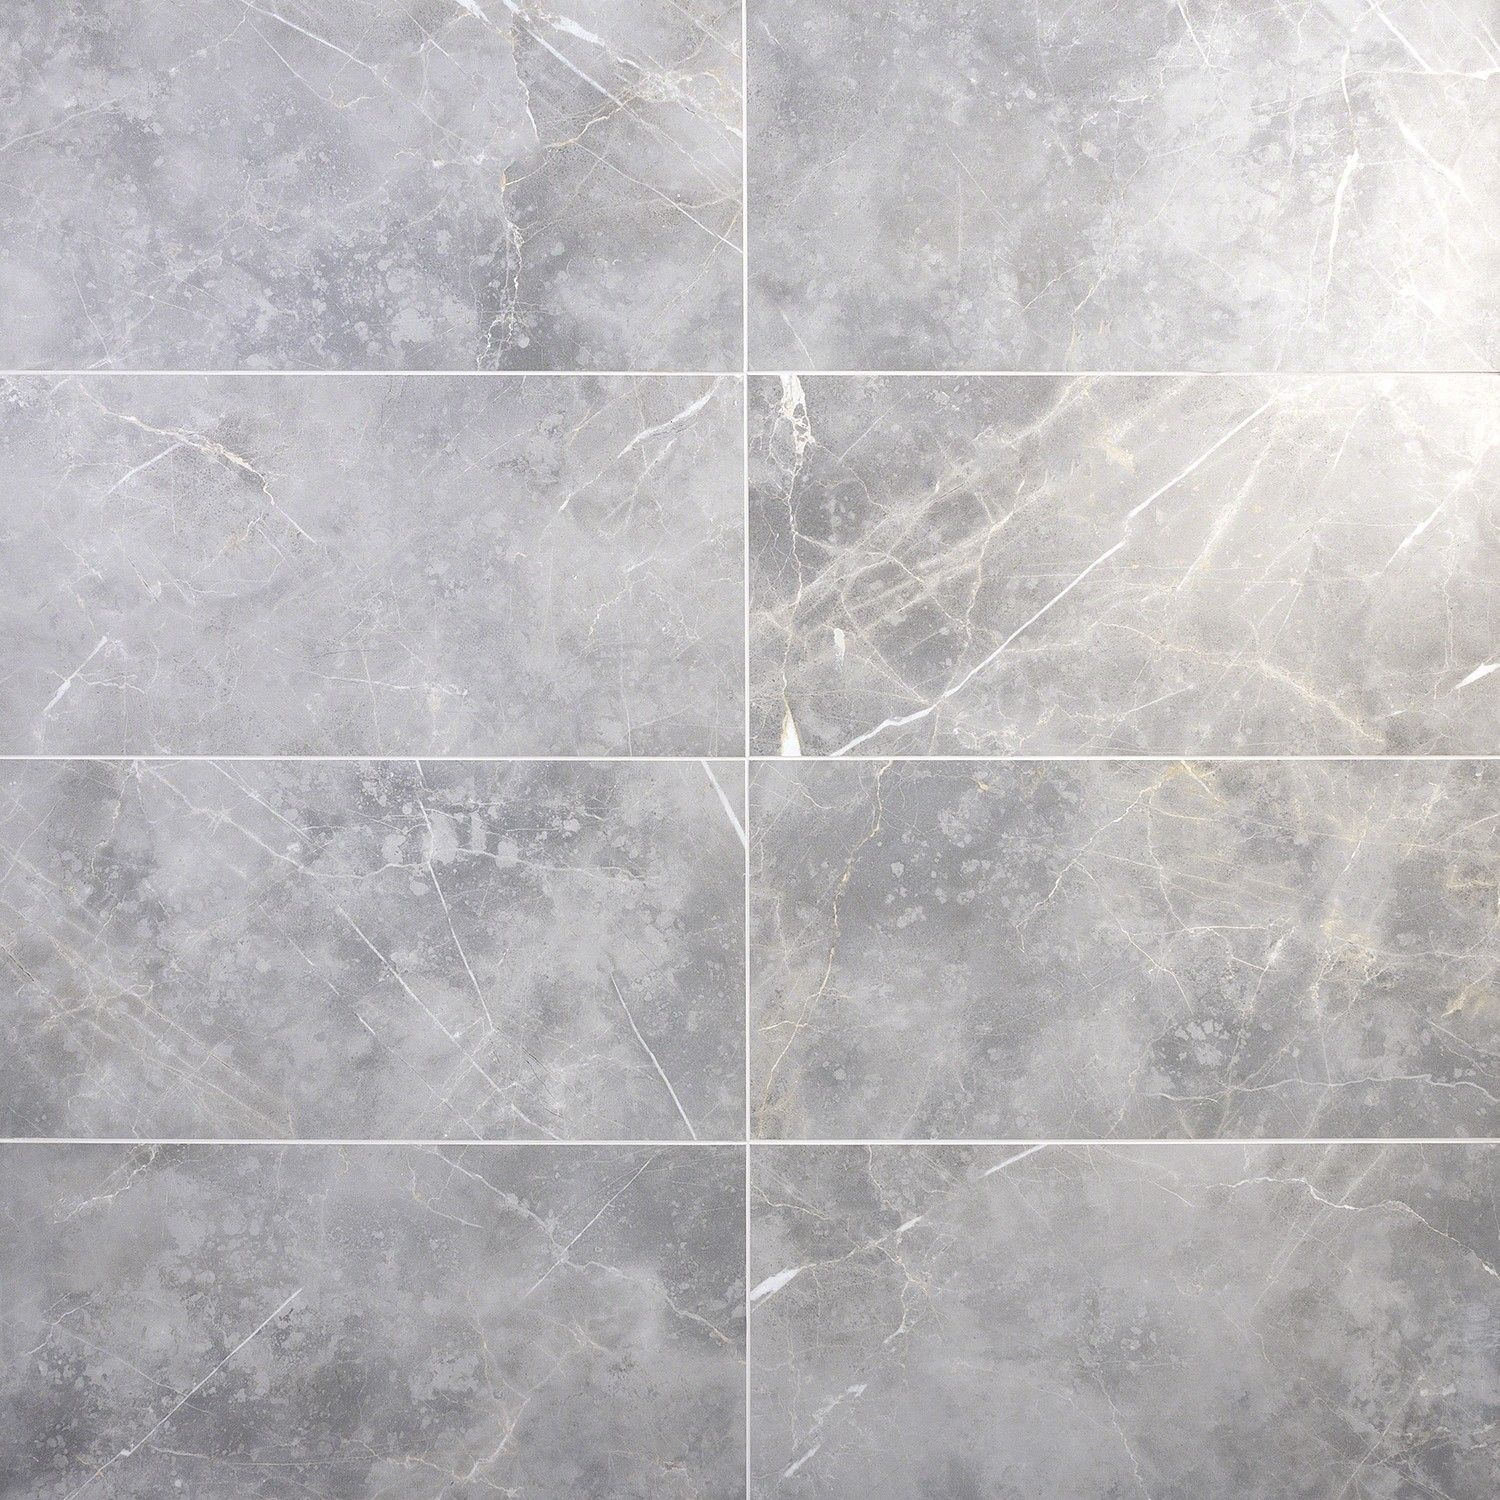 Marble Tech Grigio Imperiale 12x24 Matte Porcelain Tile In 2020 Polished Porcelain Tiles Porcelain Tile Marble Look Tile